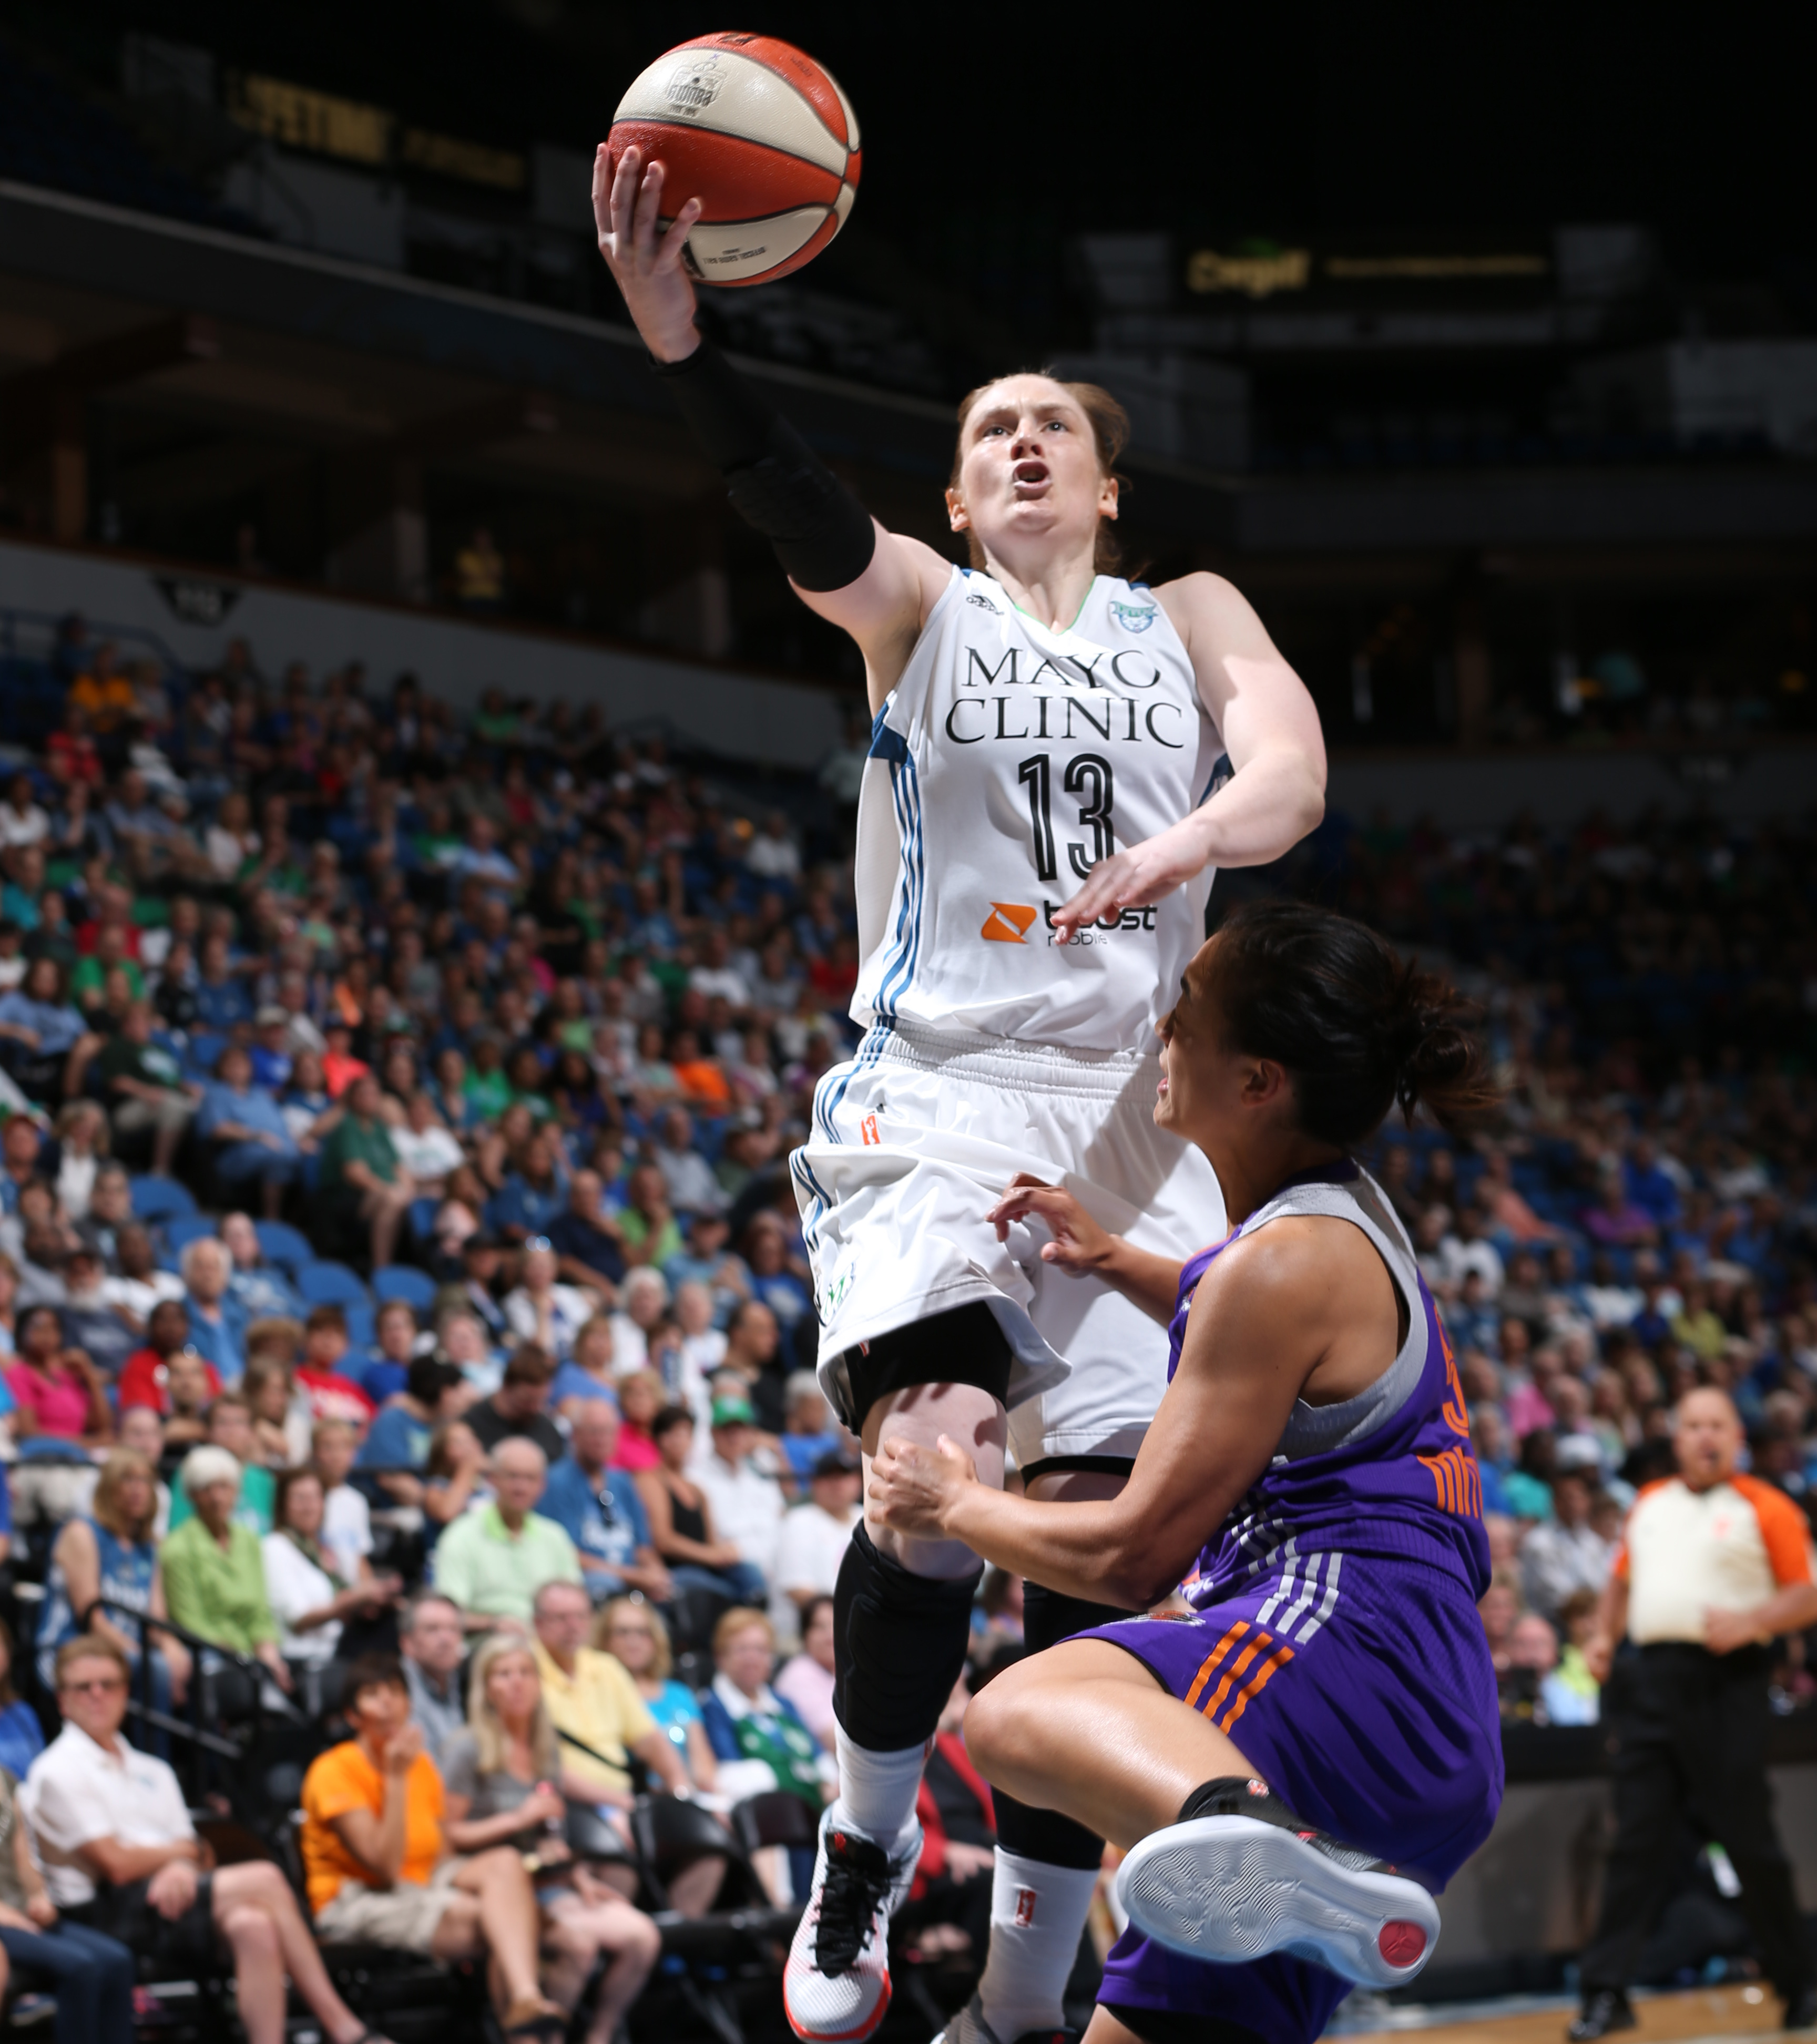 After struggling the last few games, Lynx guard Lindsay Whalen had a great game against Phoenix, scoring 21 points while adding four rebounds and three assists.